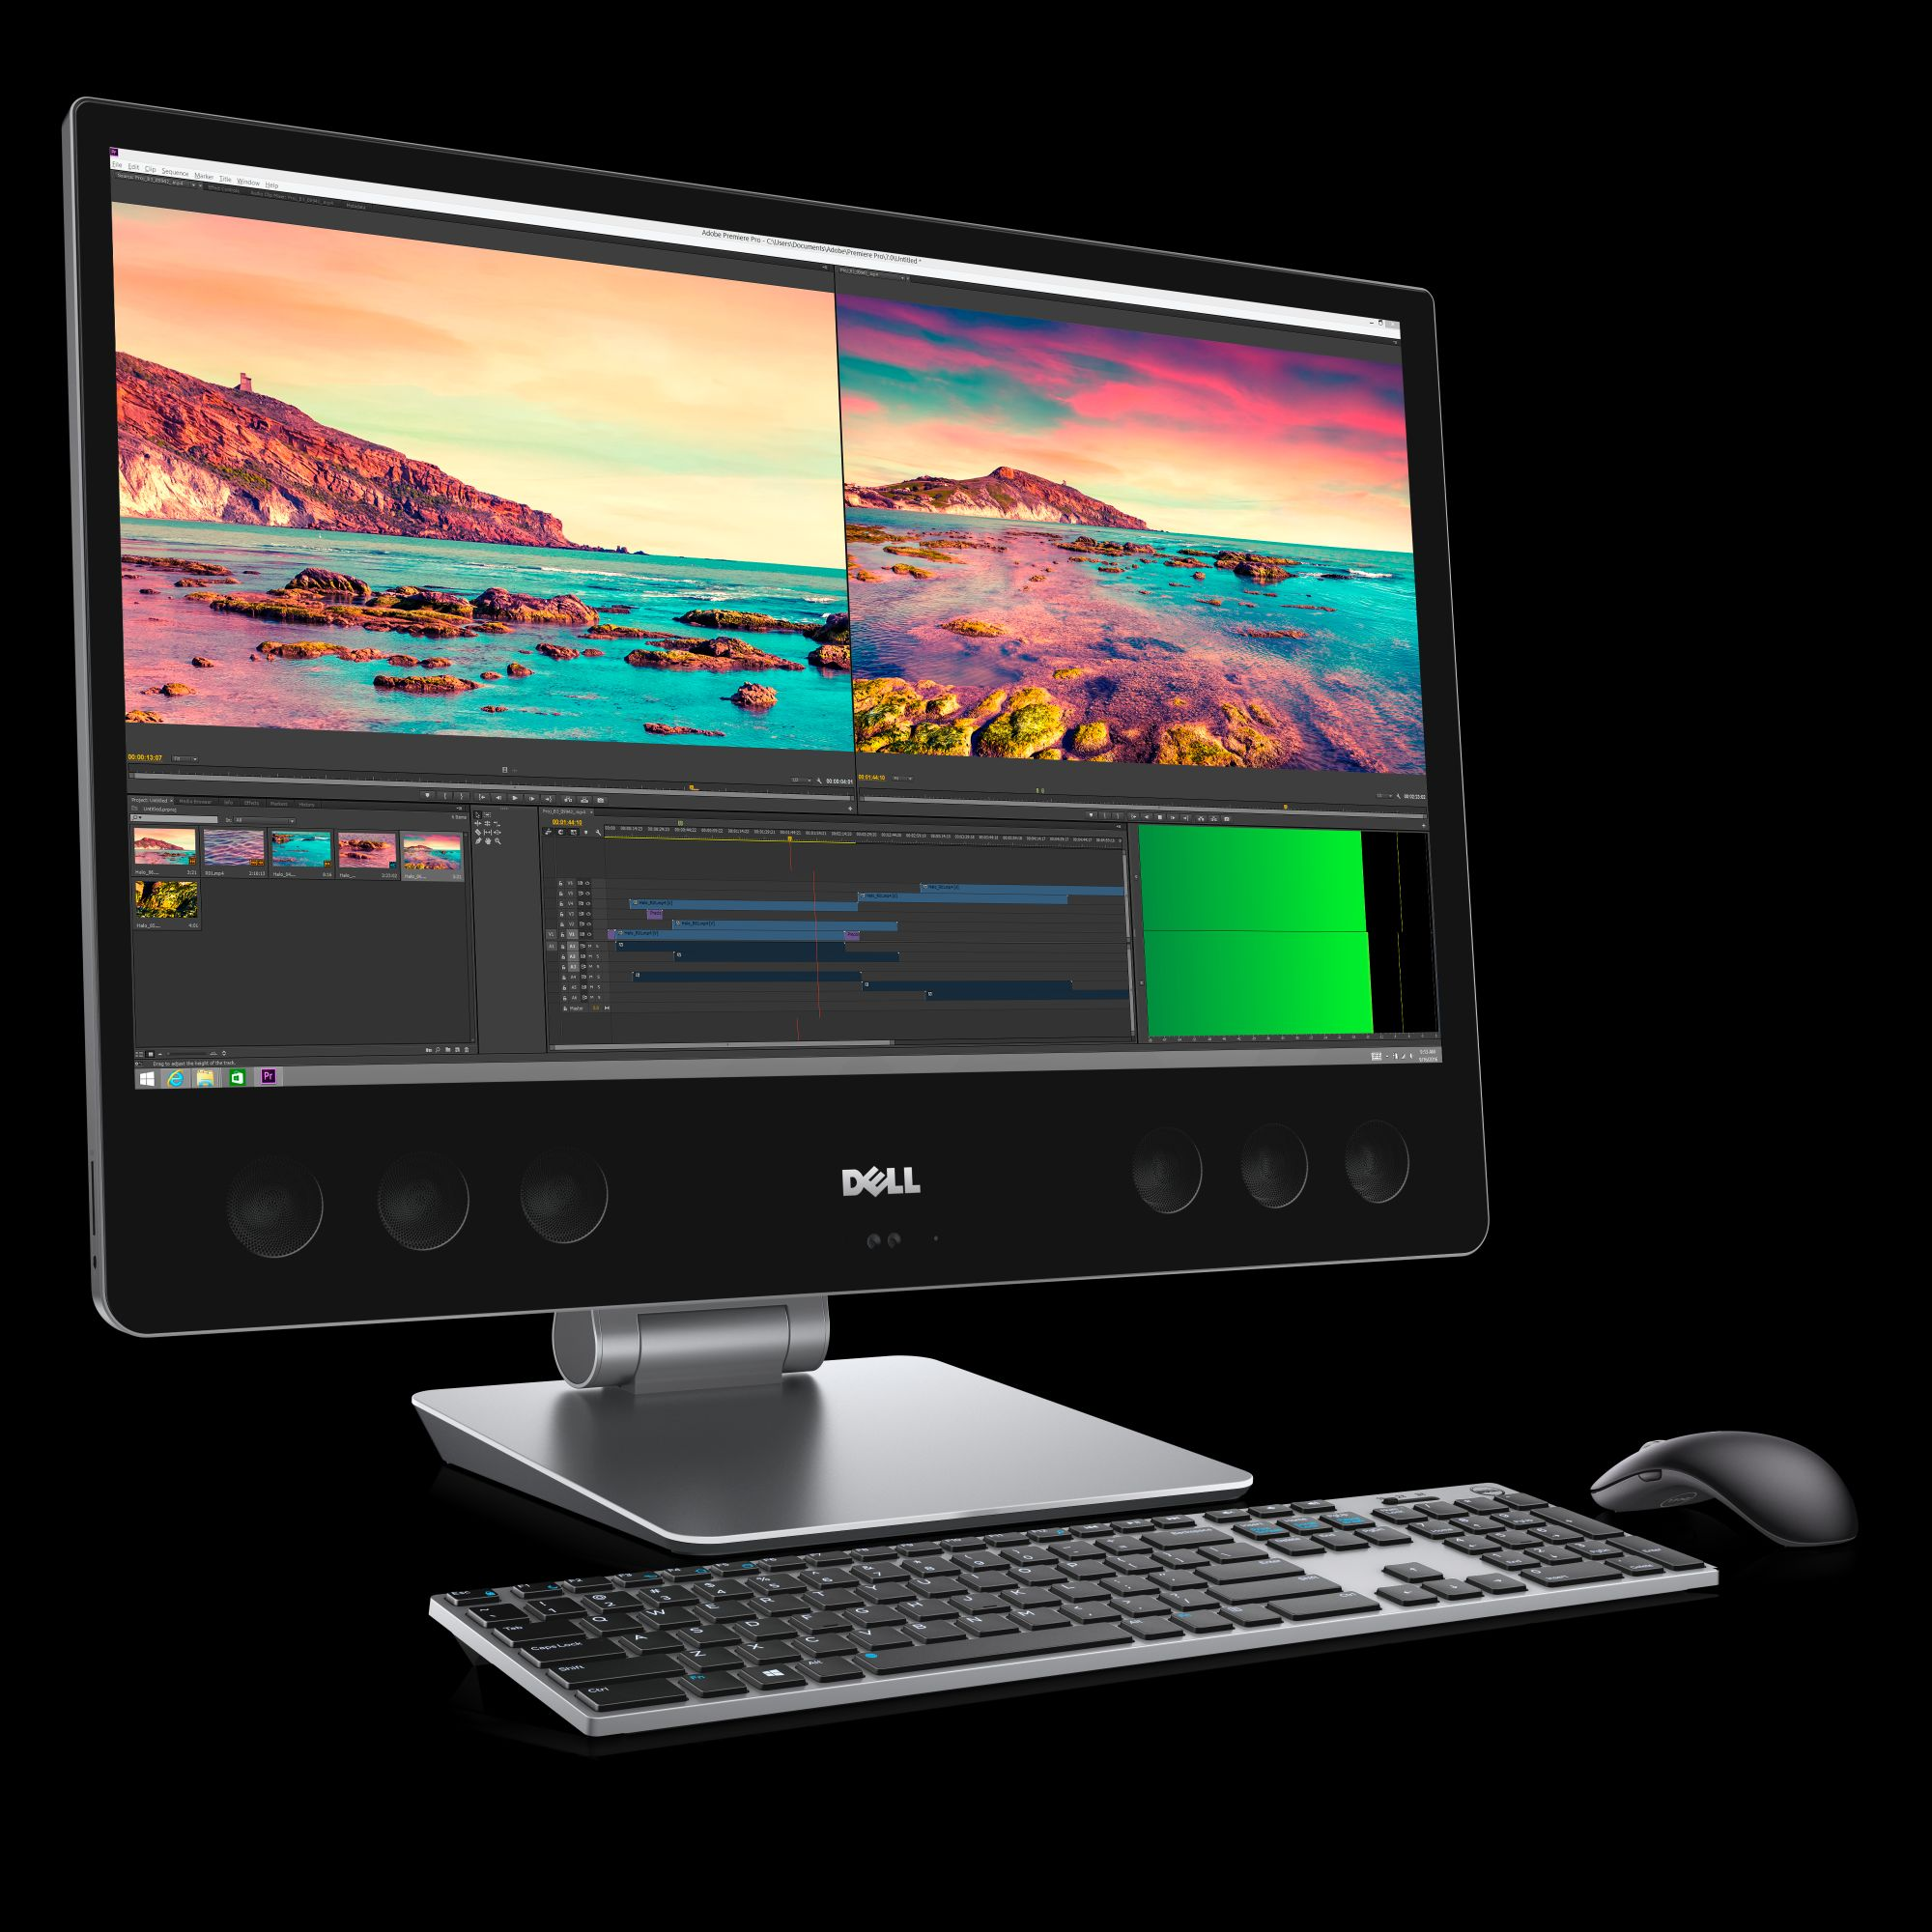 dell-xps-27-image_2